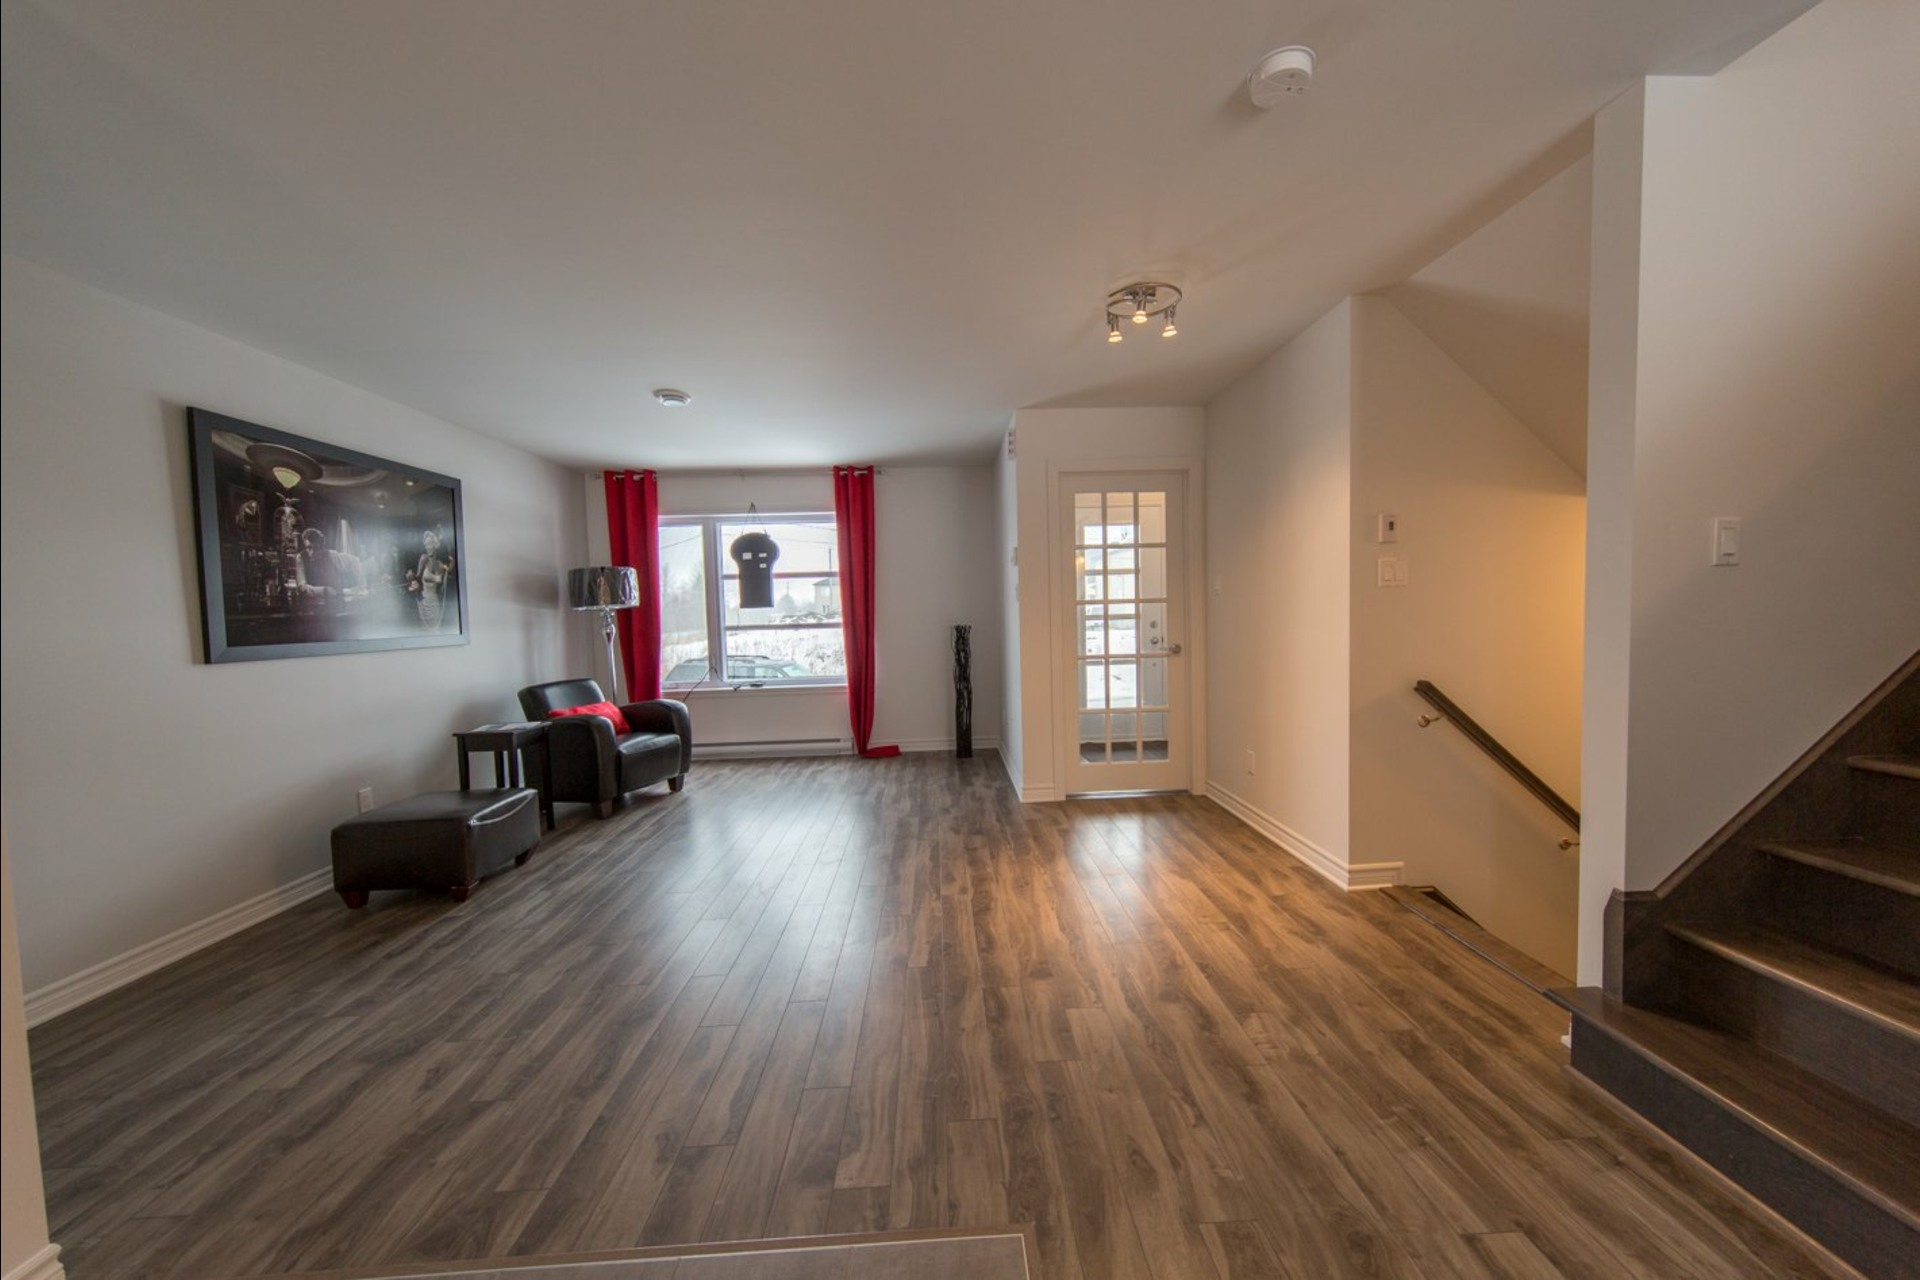 image 4 - House For sale Granby - 7 rooms